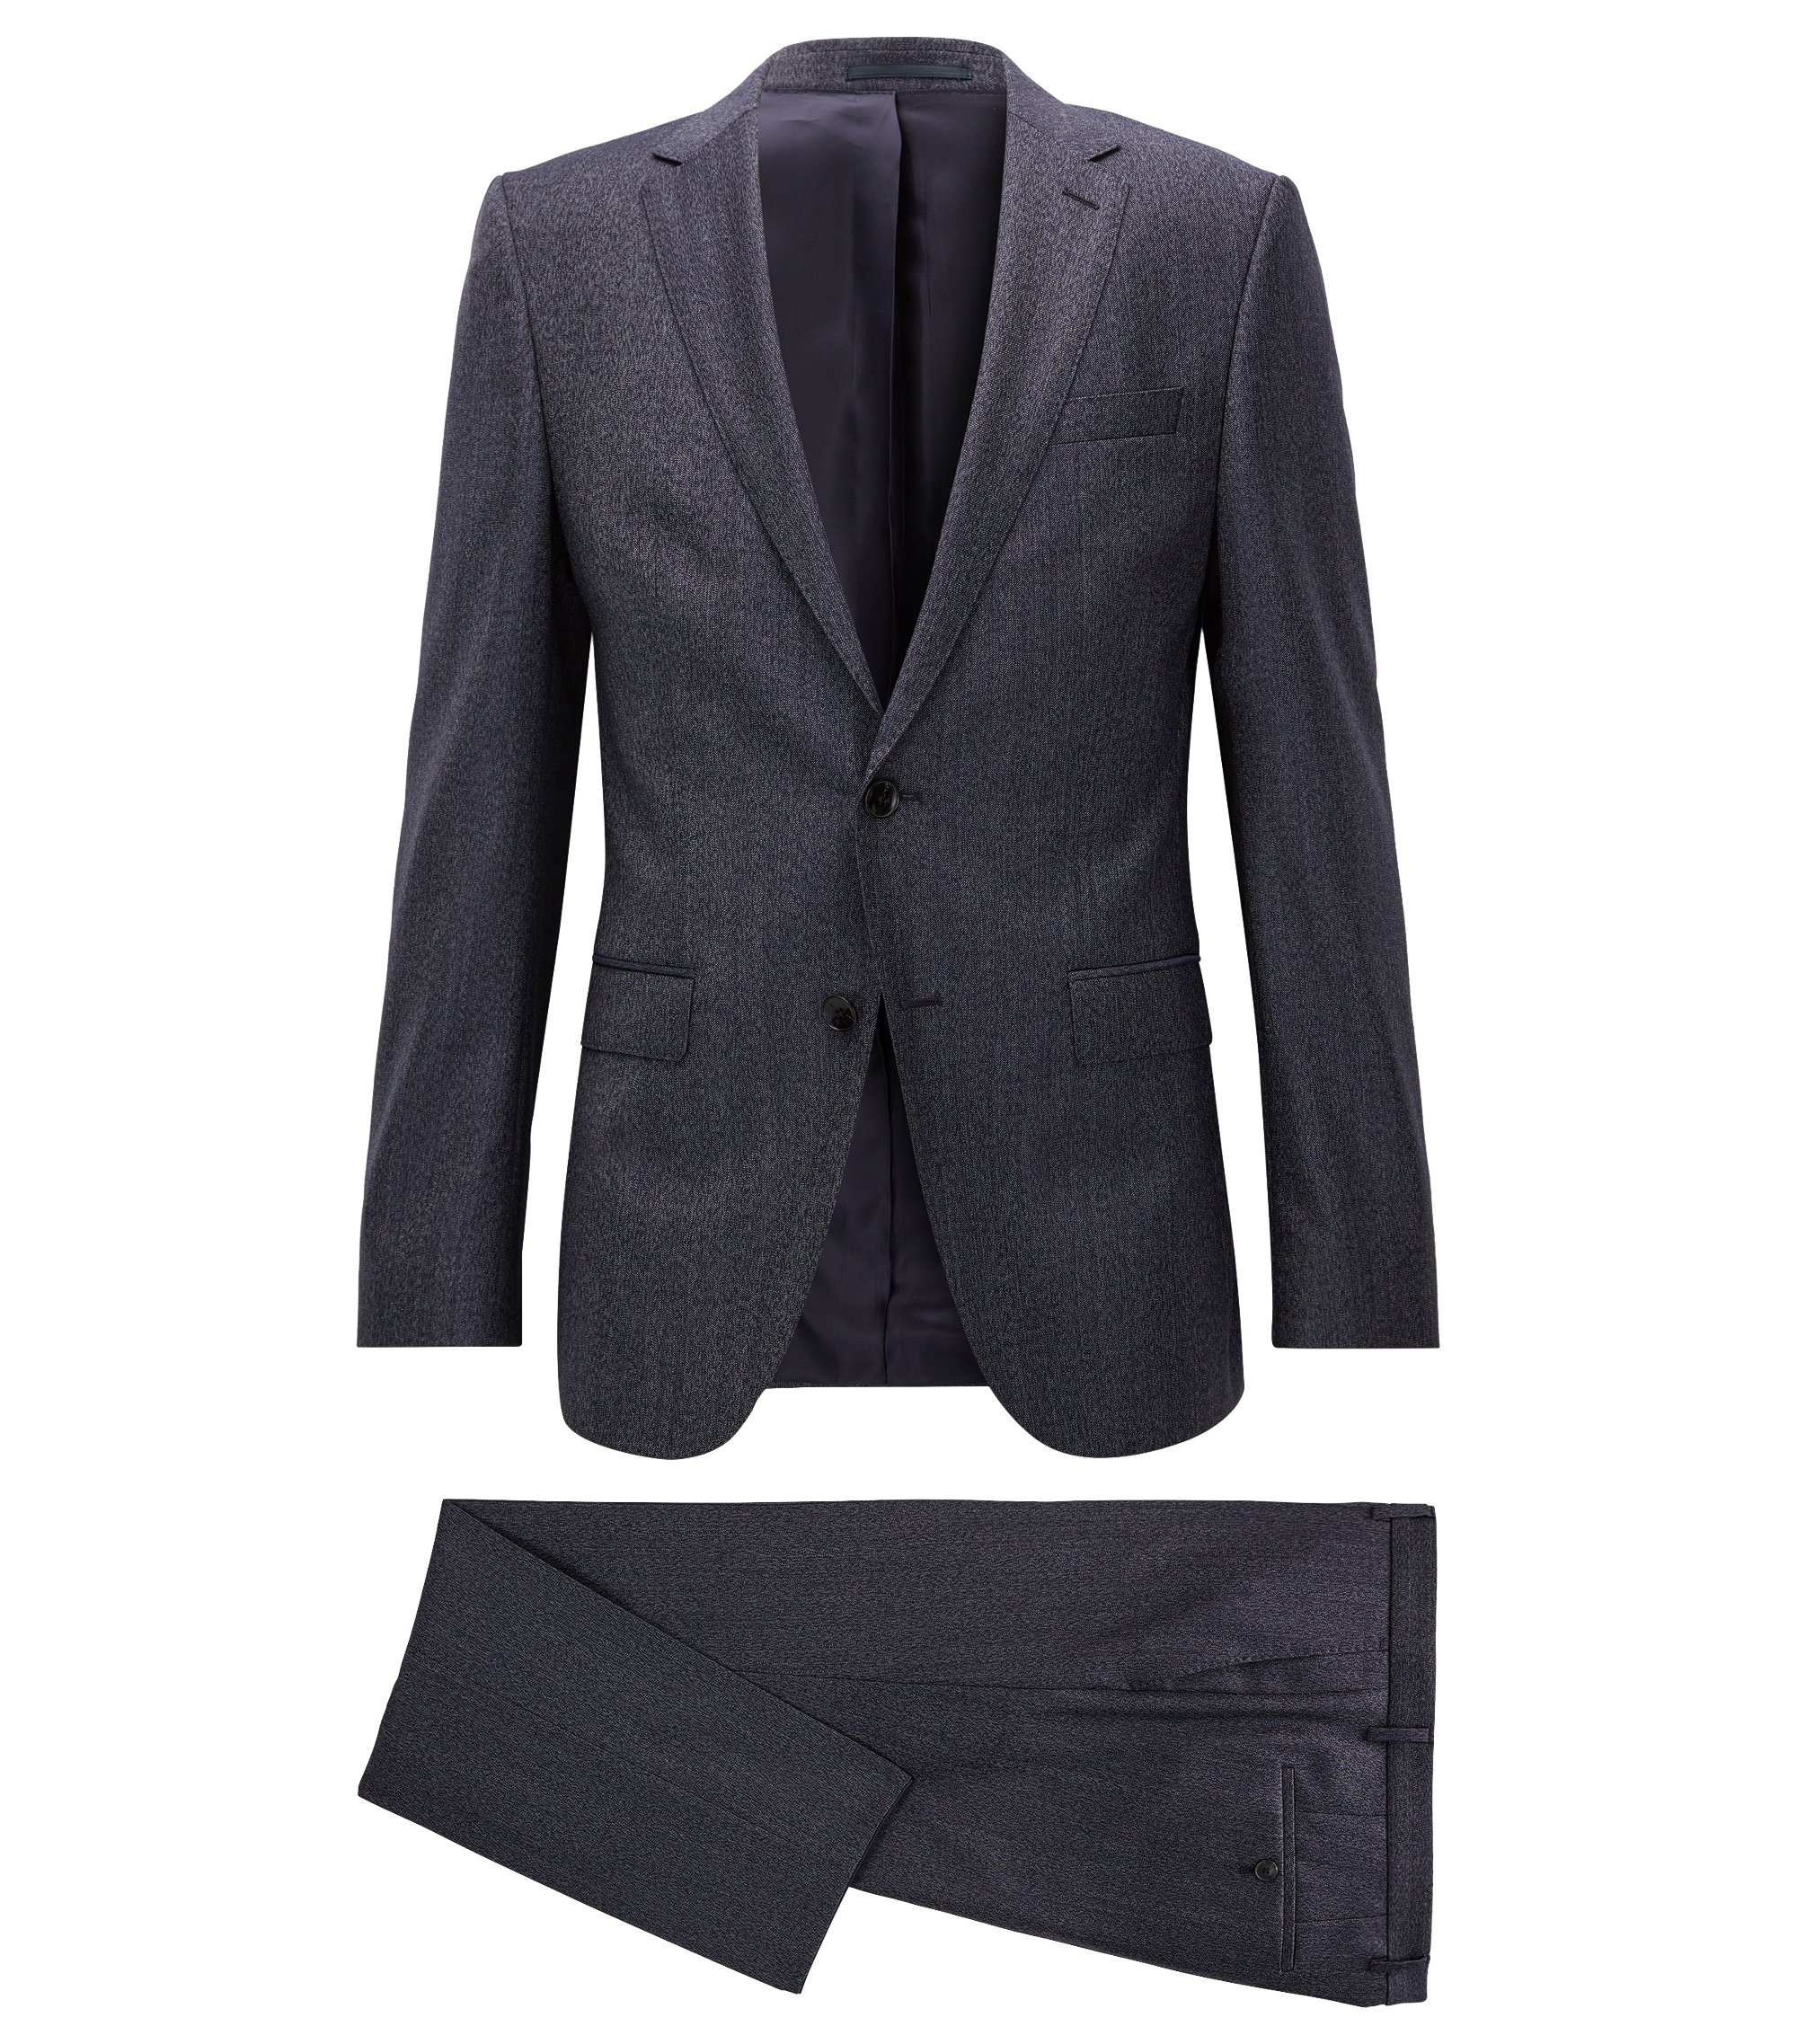 Melange Virgin Wool Suit, Slim Fit | Novan/Ben, Dark Blue